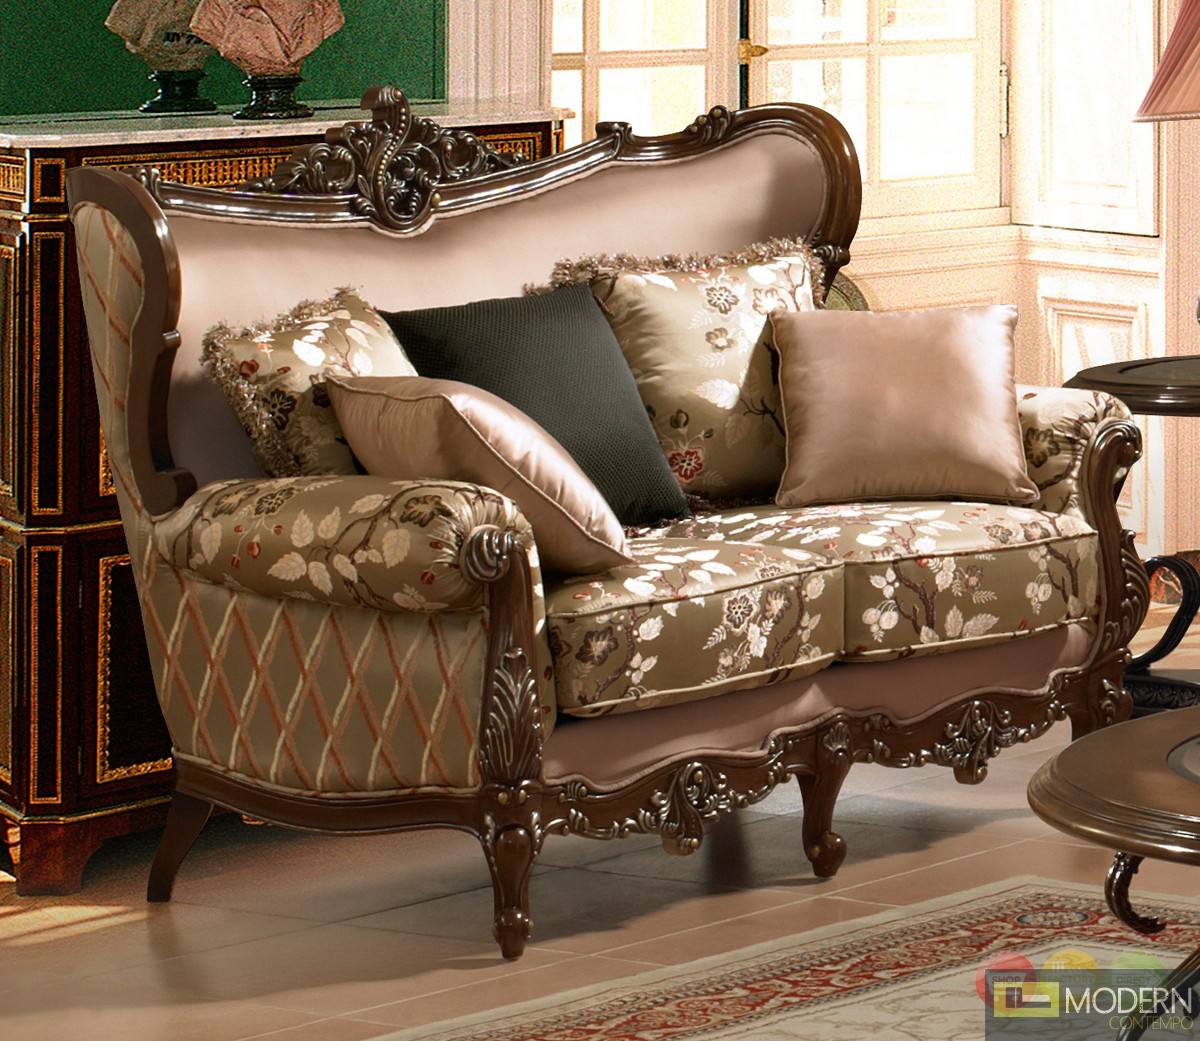 Traditional Sofas Living Room Furniture: Formal Sofa Victorian Style Living Room Antique Luxury